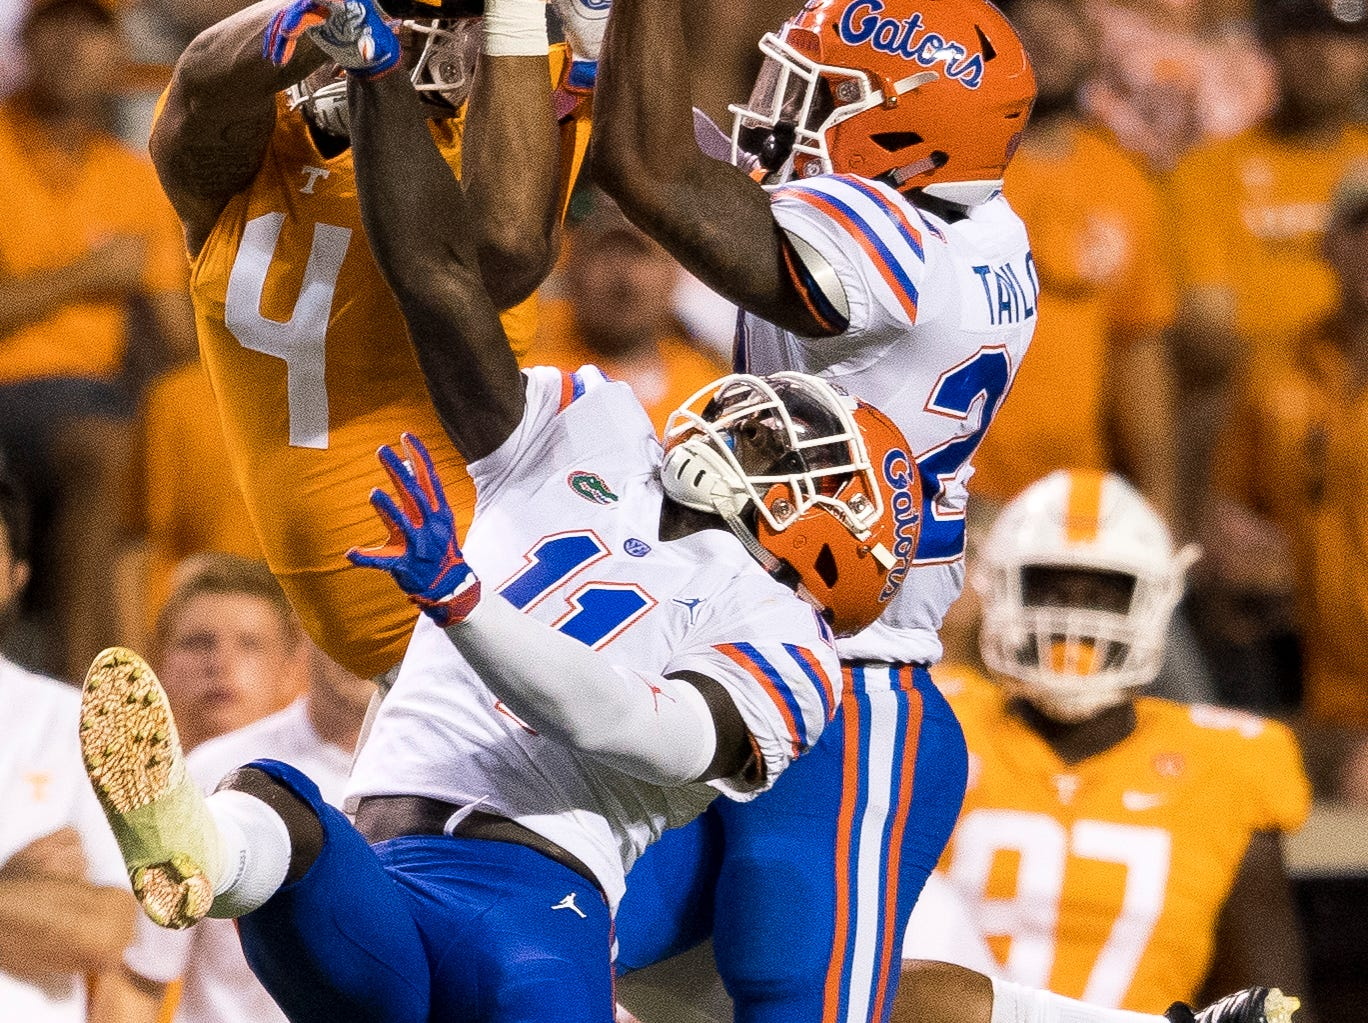 A pass intended for Tennessee tight end Dominick Wood-Anderson (4) is nearly intercepted by Florida defensive back Jeawon Taylor (29) and Florida linebacker Vosean Joseph (11) during the Tennessee Volunteers' game against Florida in Neyland Stadium on Saturday, Sept. 22, 2018.